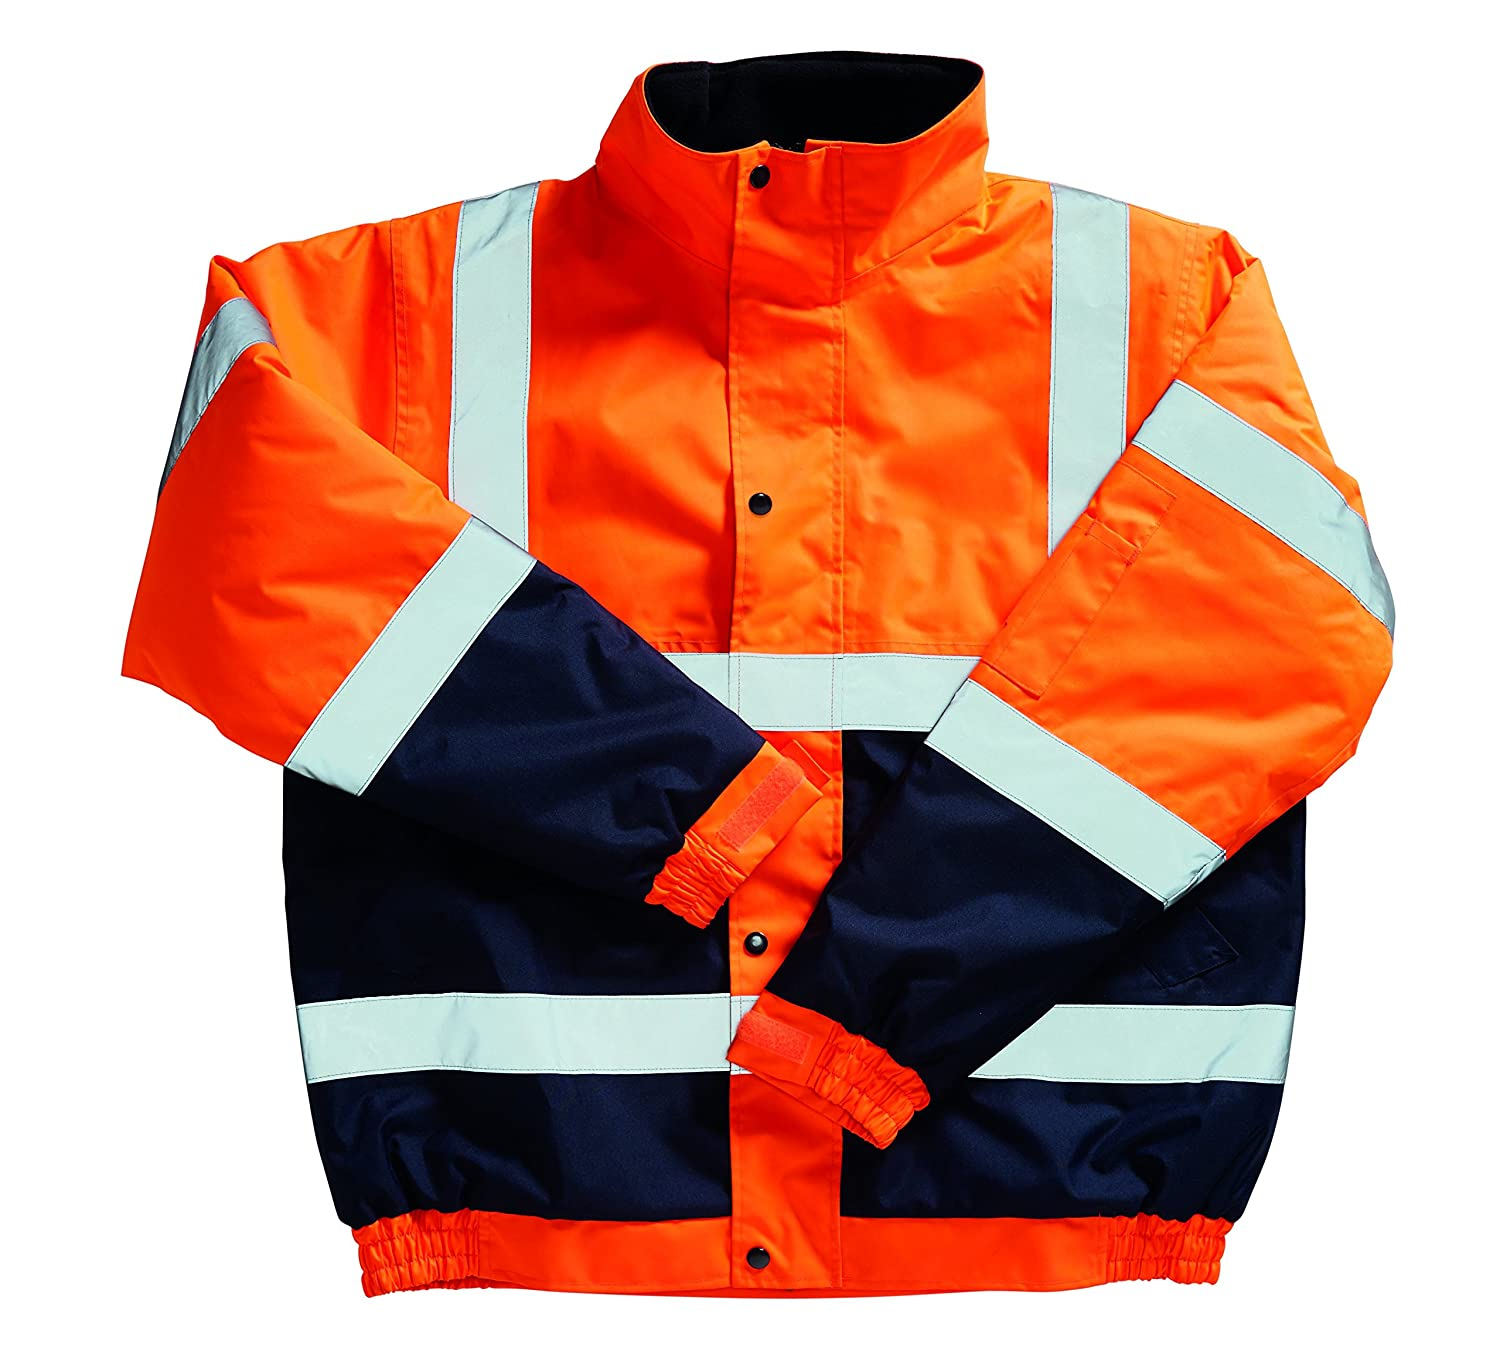 Blackrock 80026 Orange/Navy High Visibility Two Tone Bomber Jacket, EN20471, Class 3 8002606